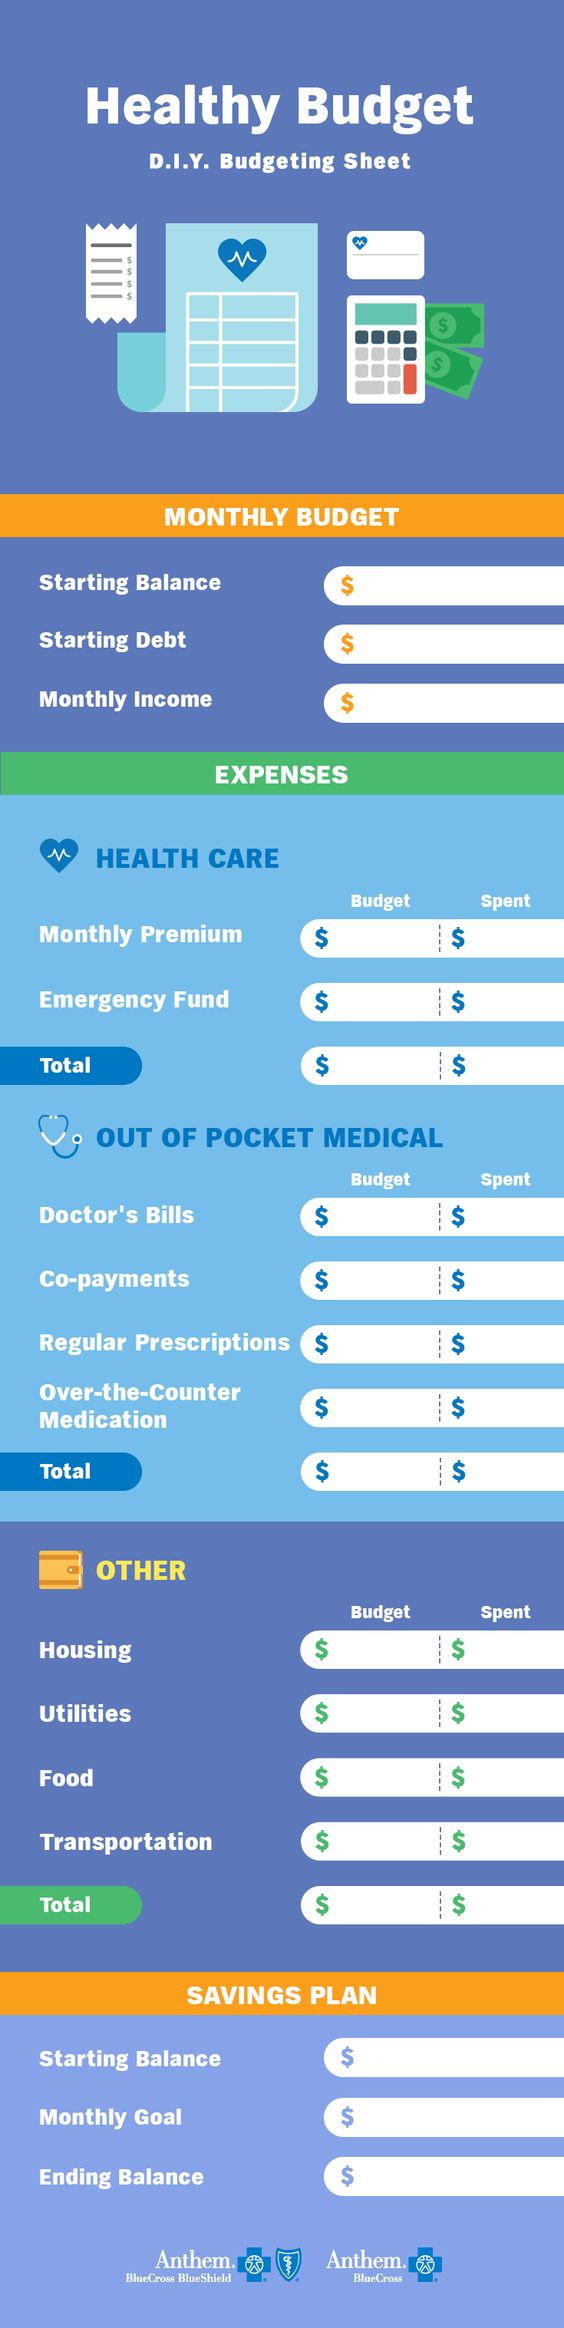 Don't Get Caught Unprepared with Out Of Pocket Medical Cost this Year